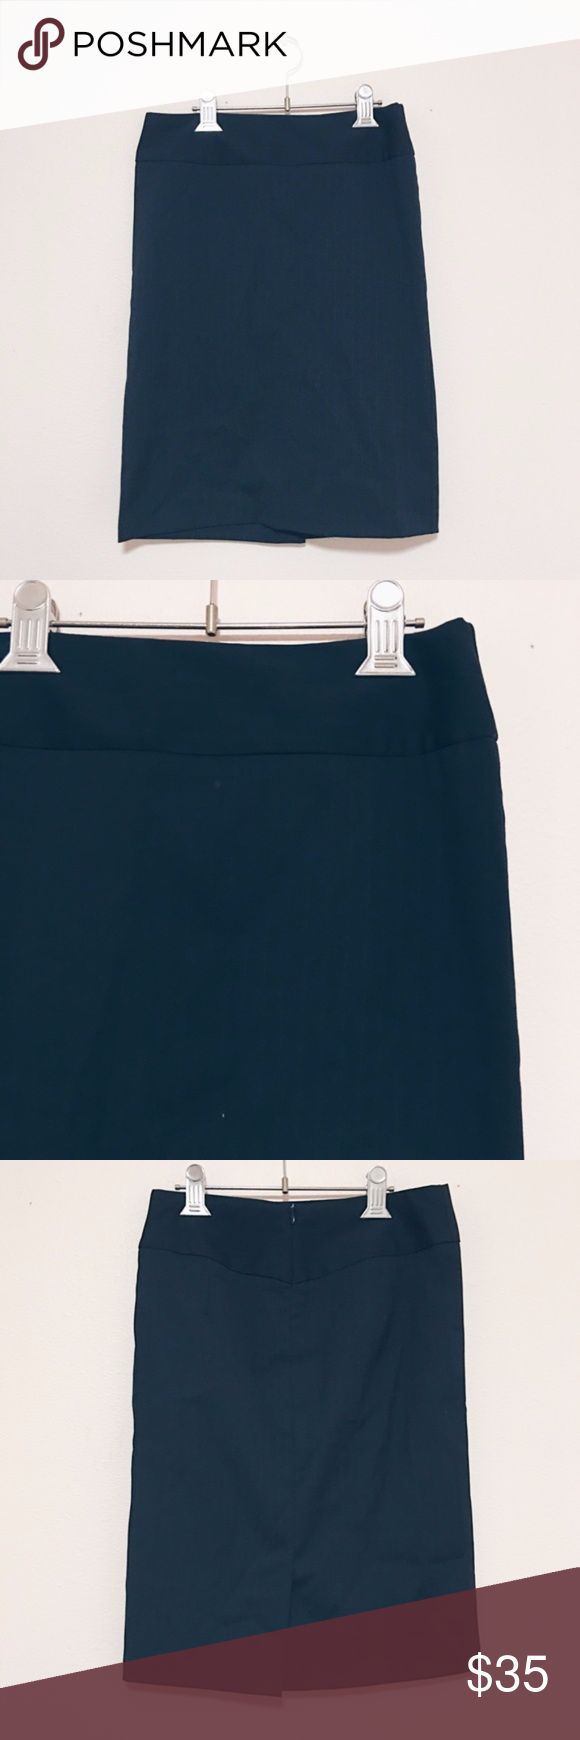 United color of Benetton Pencil Skirt ✹ United color of Benetton  ✹ NWOT ✹ Size: 38 (~4) ✹ Black pencil skirt with thin vertical line patterned and a small slit on the back United Colors Of Benetton Skirts Pencil